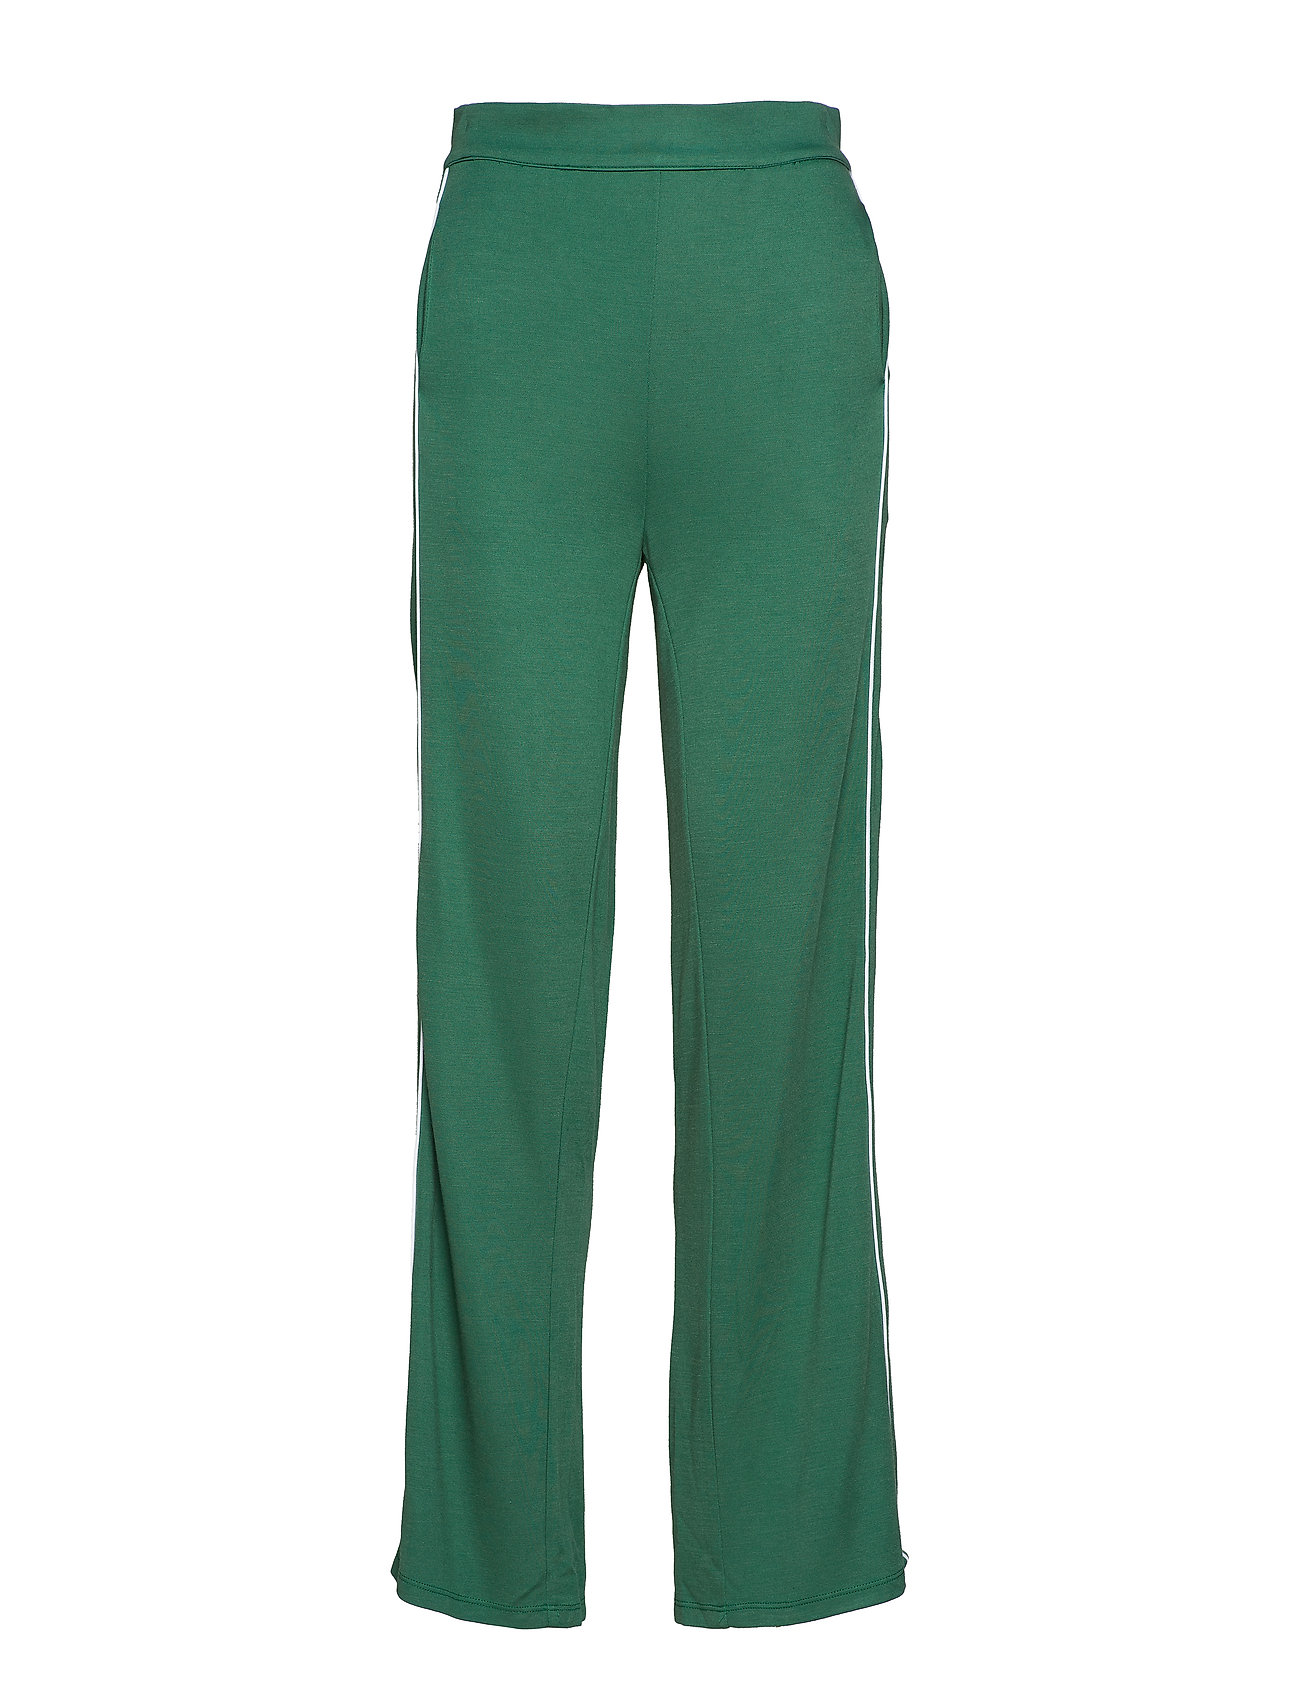 Soft Rebels Pingo Wide Pant - EVERGREEN